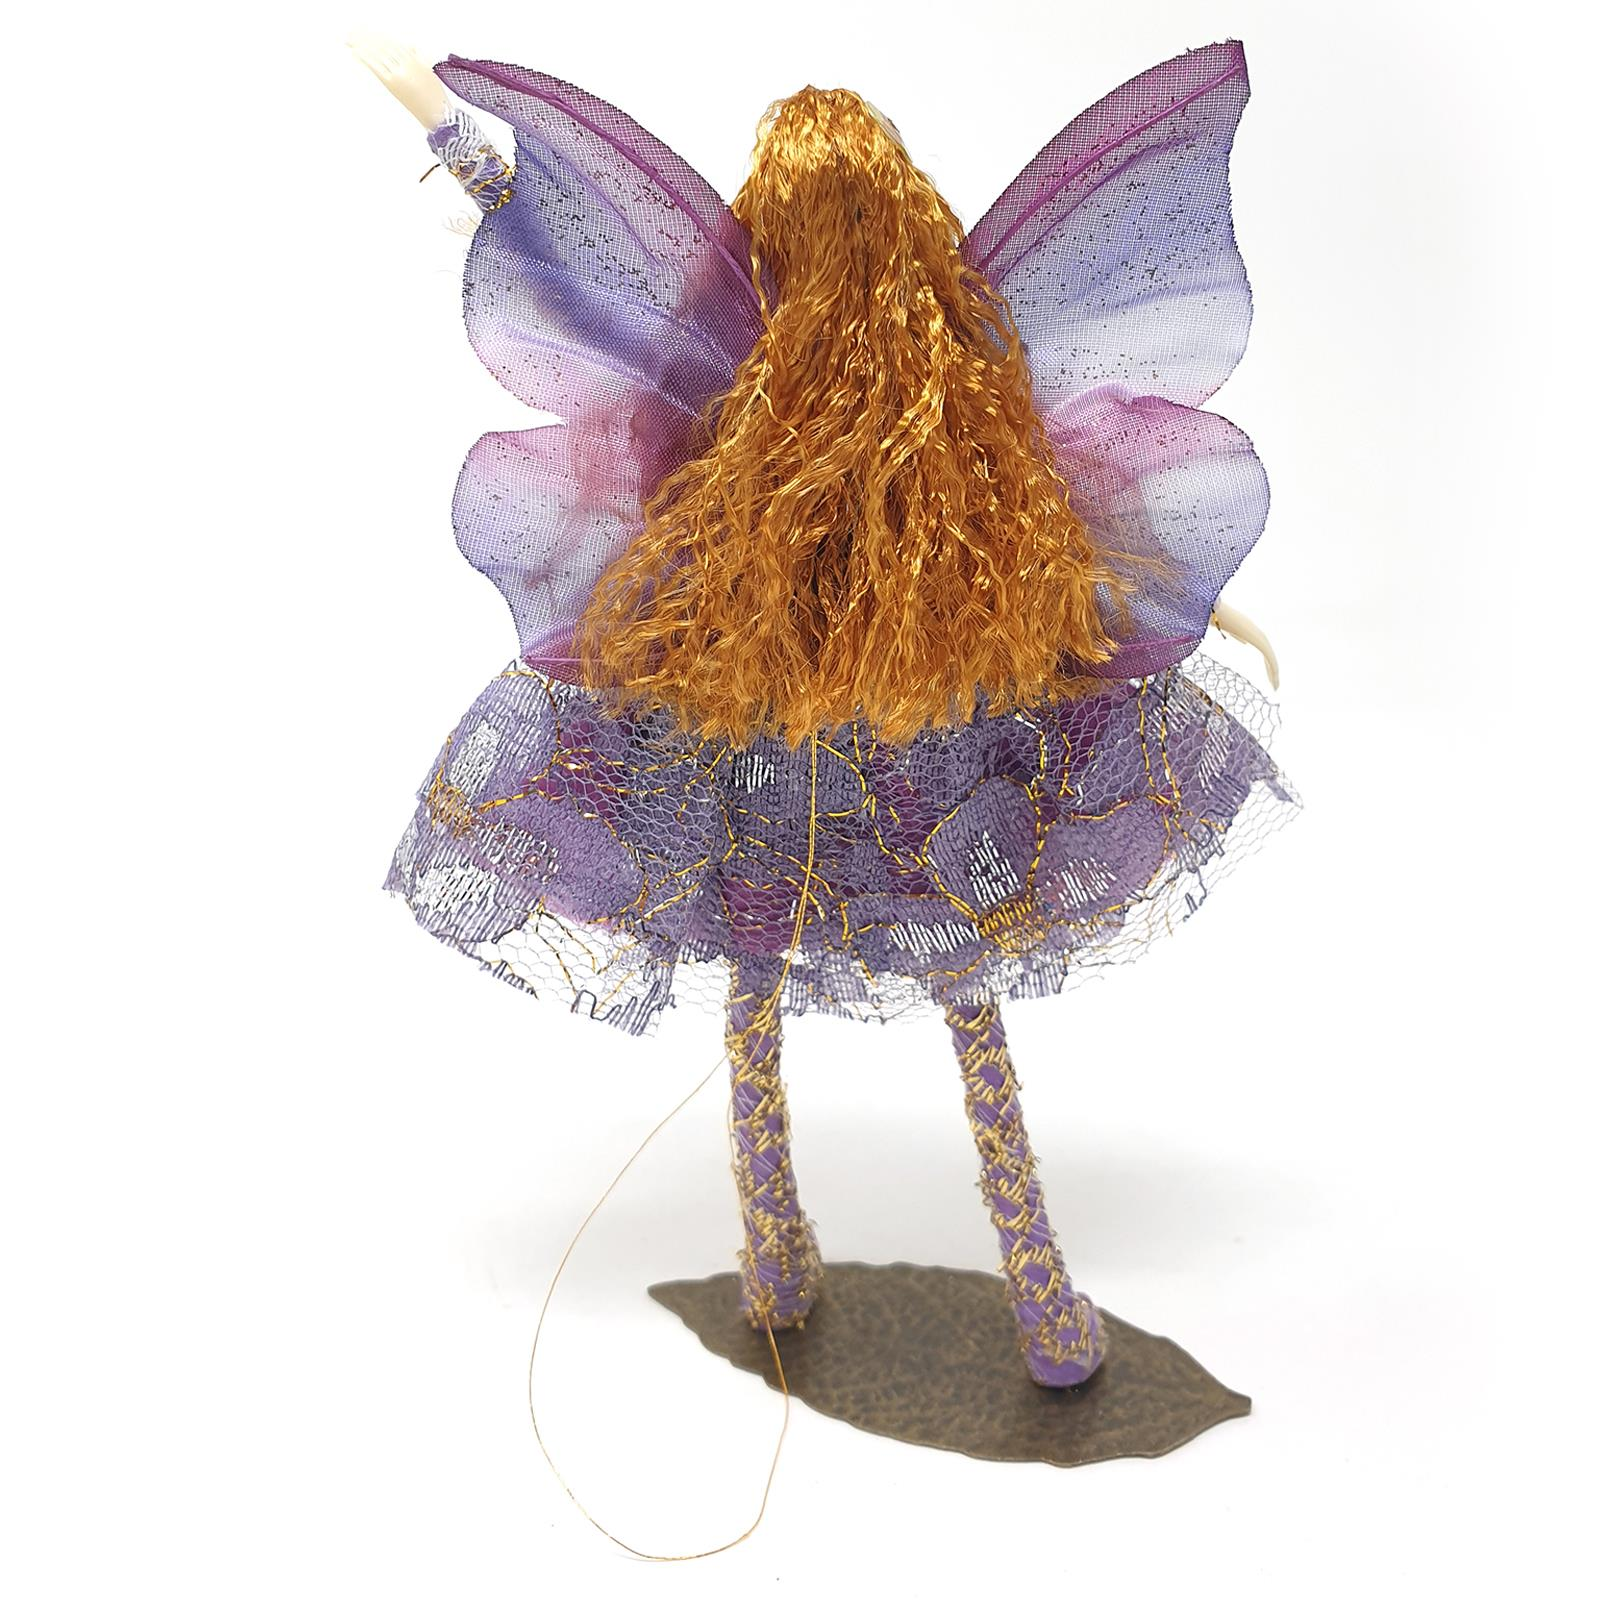 The-Fairy-Family-Collectable-Ornament-Mermaid-Forest-Fairies-Elf-Figurines-Gift thumbnail 41